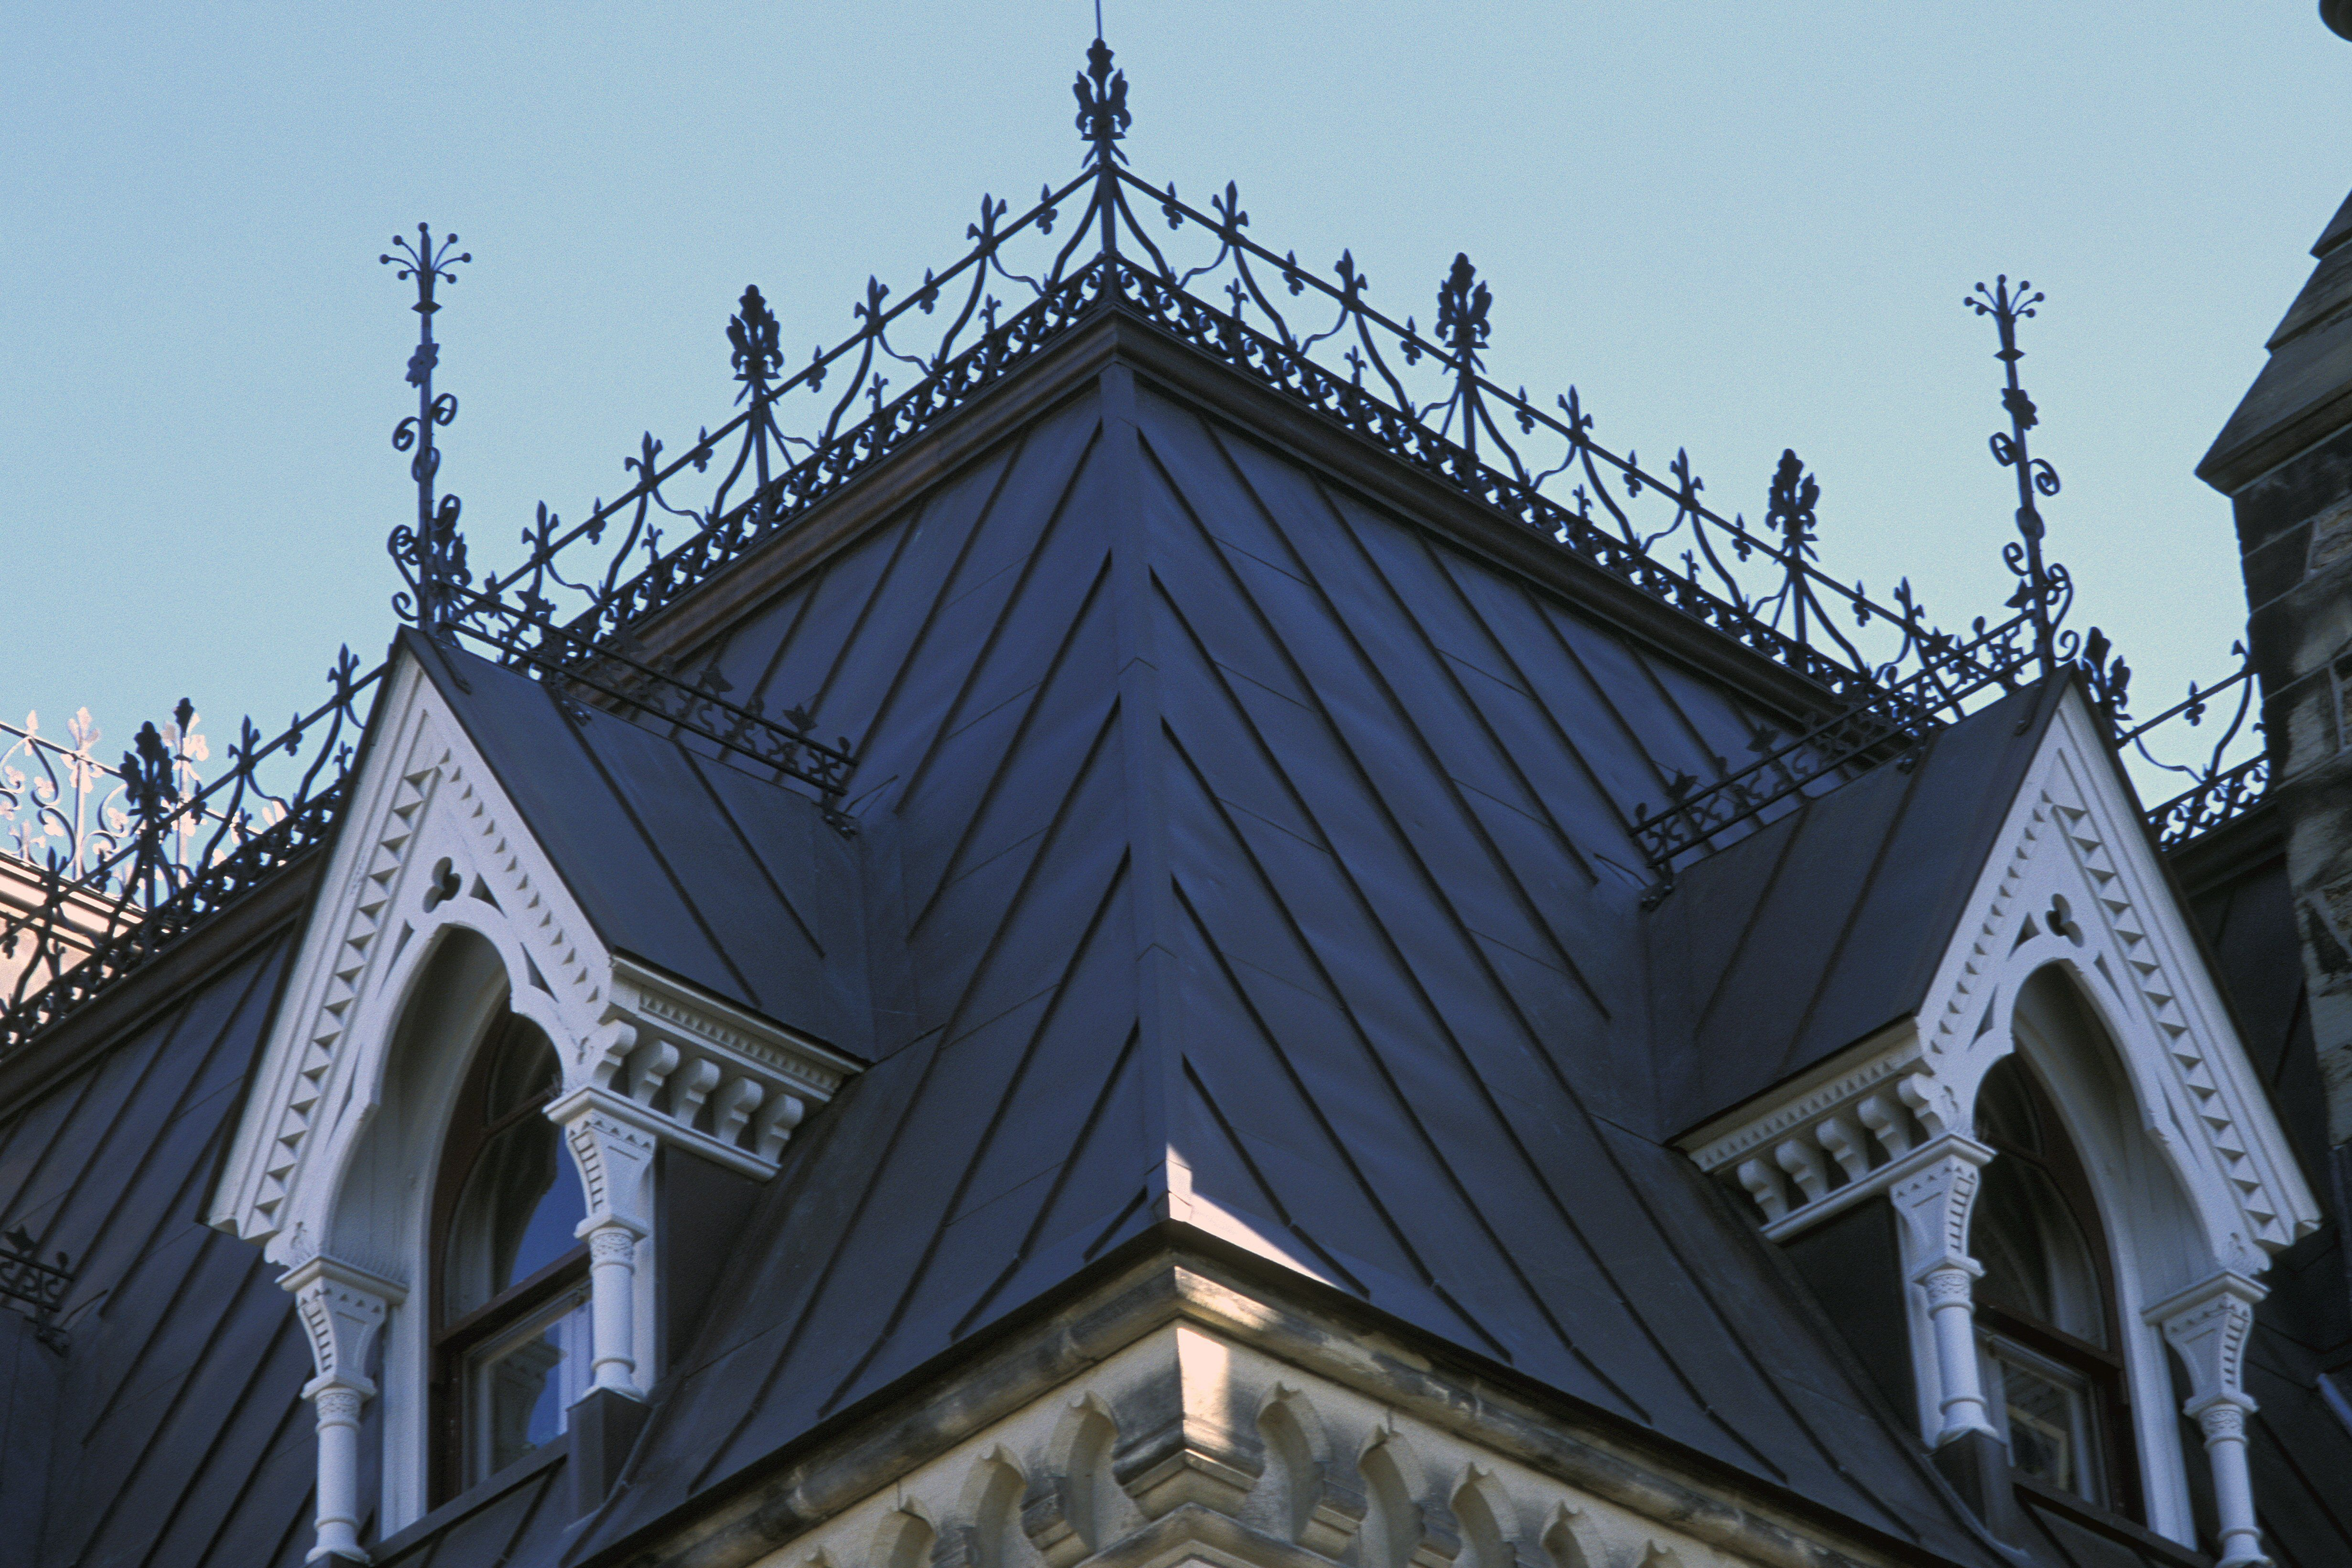 Detail of ornate gabled dormer windows from the steep slope of a mansard roof